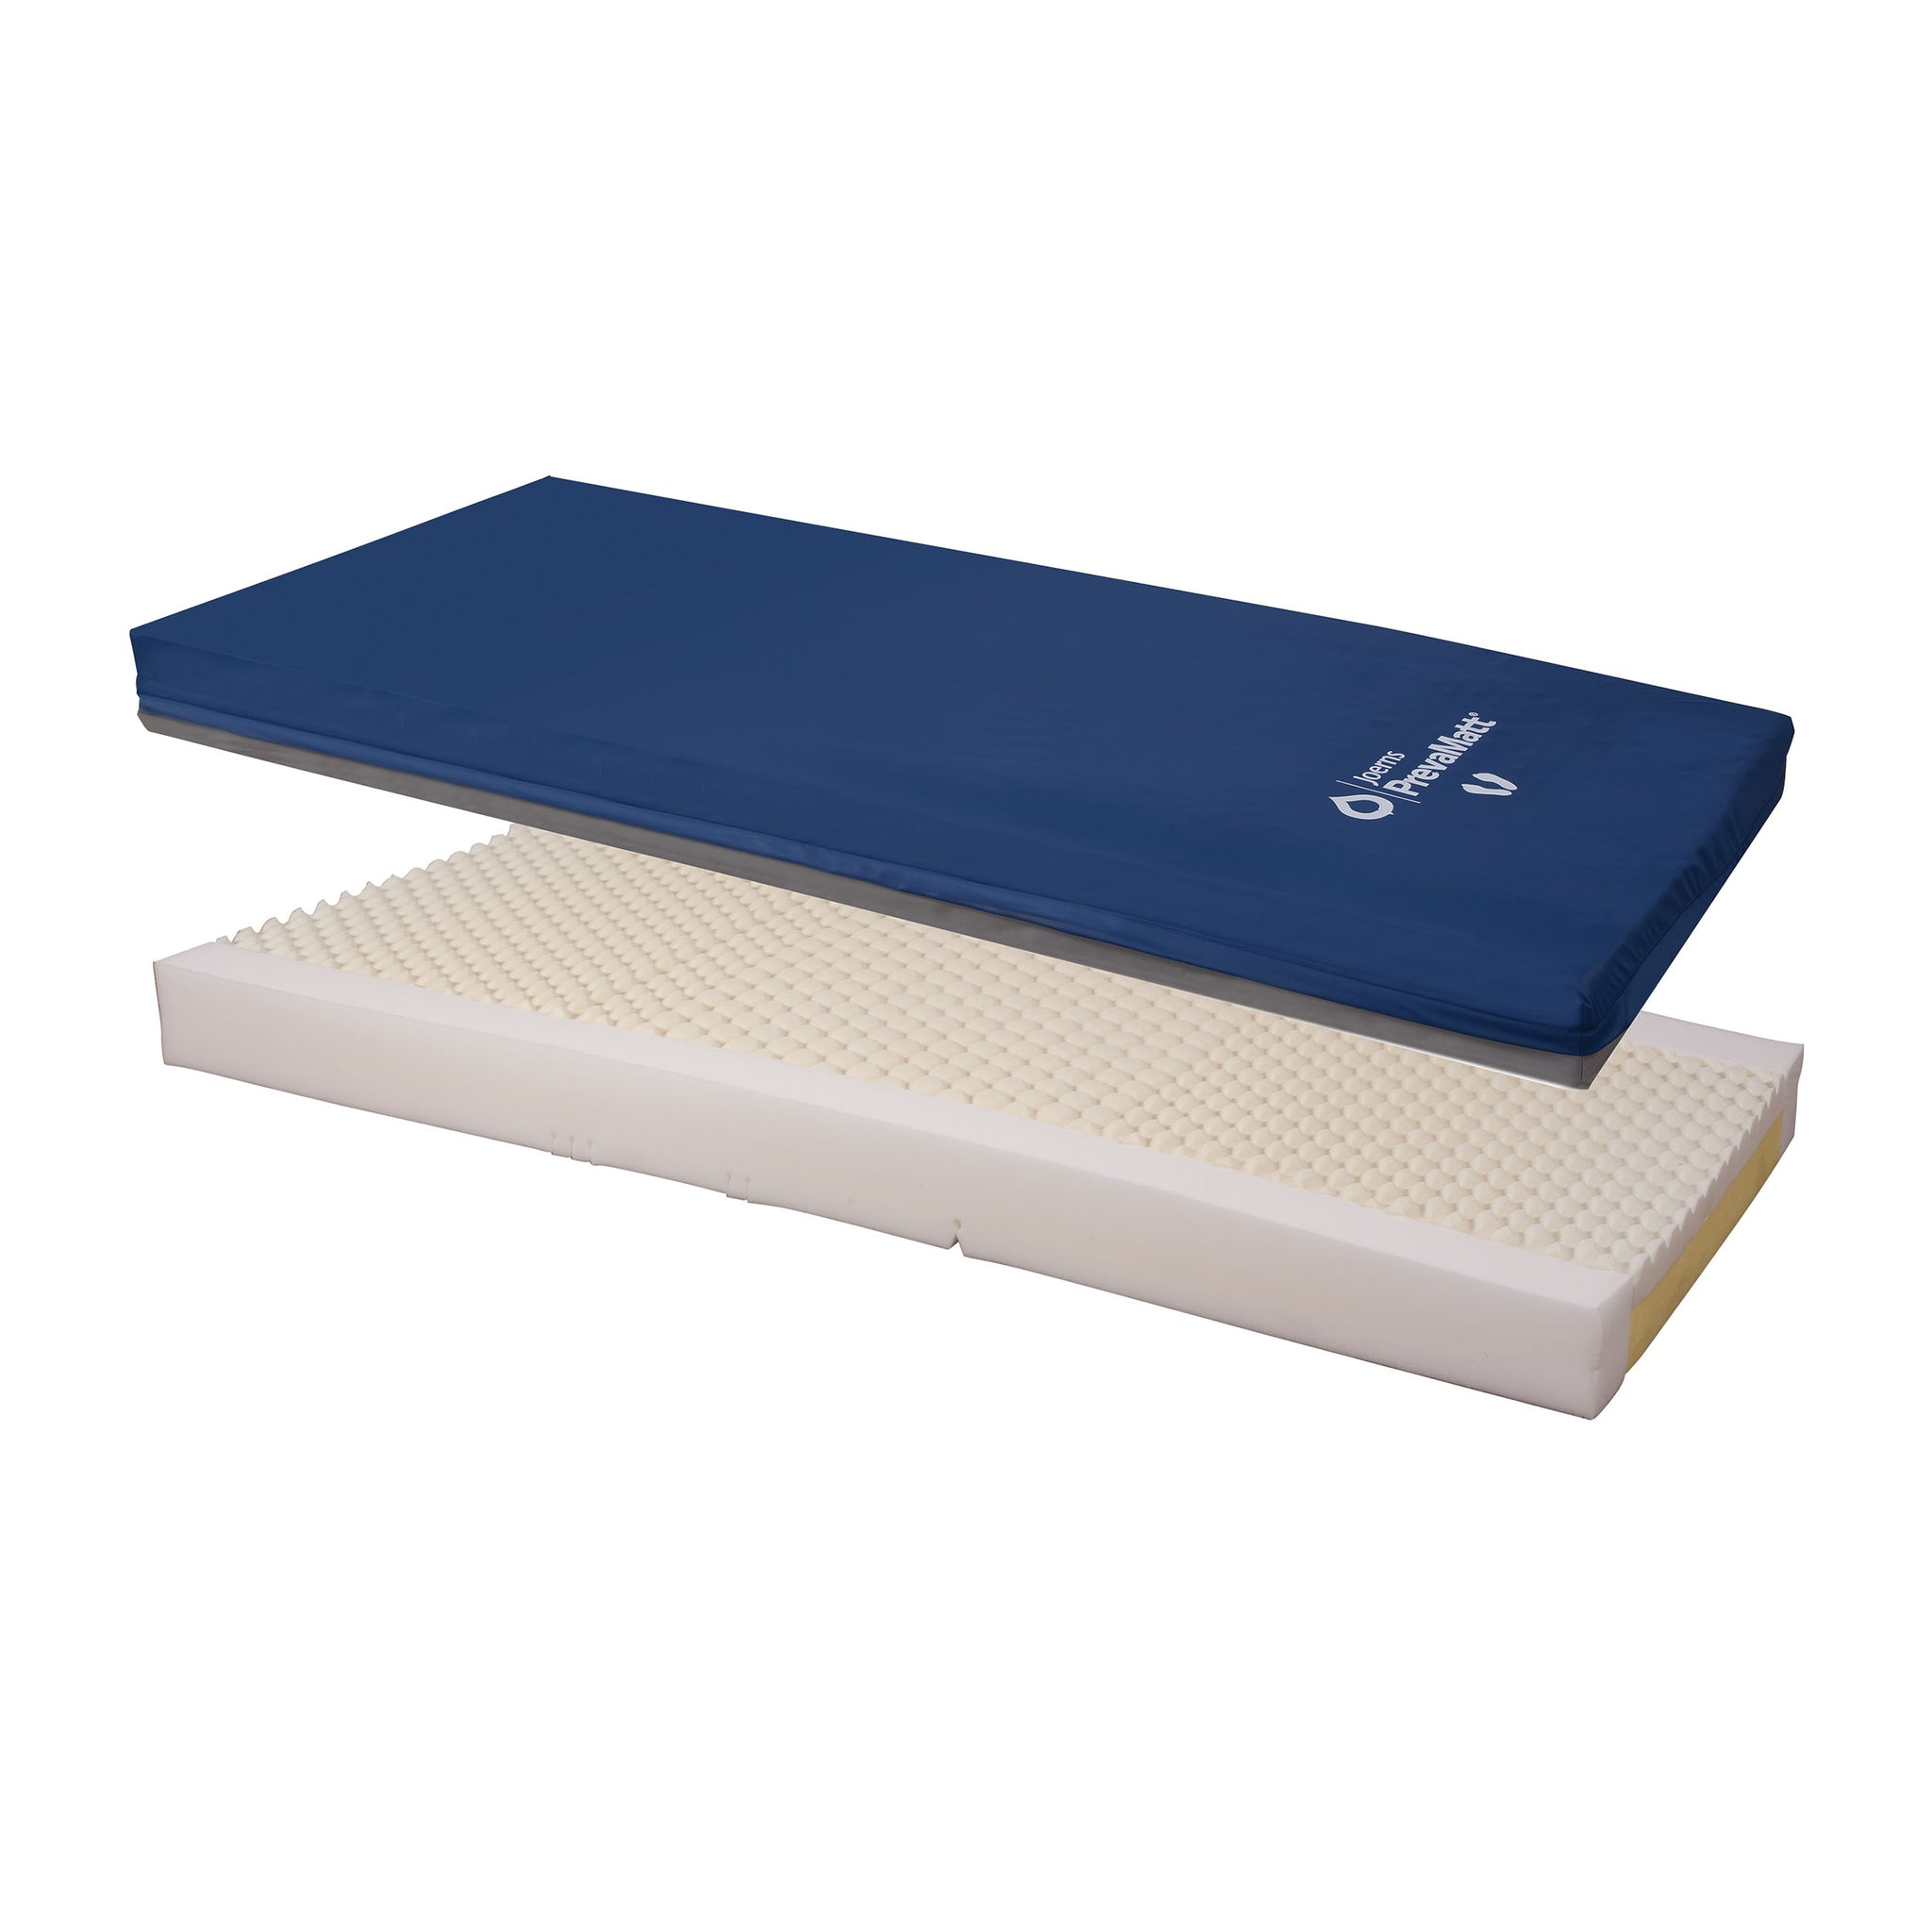 Joerns PrevaMatt Console Raised Perimeter Mattress with Zippered 2-Way Stretch Cover and Fire Barrier